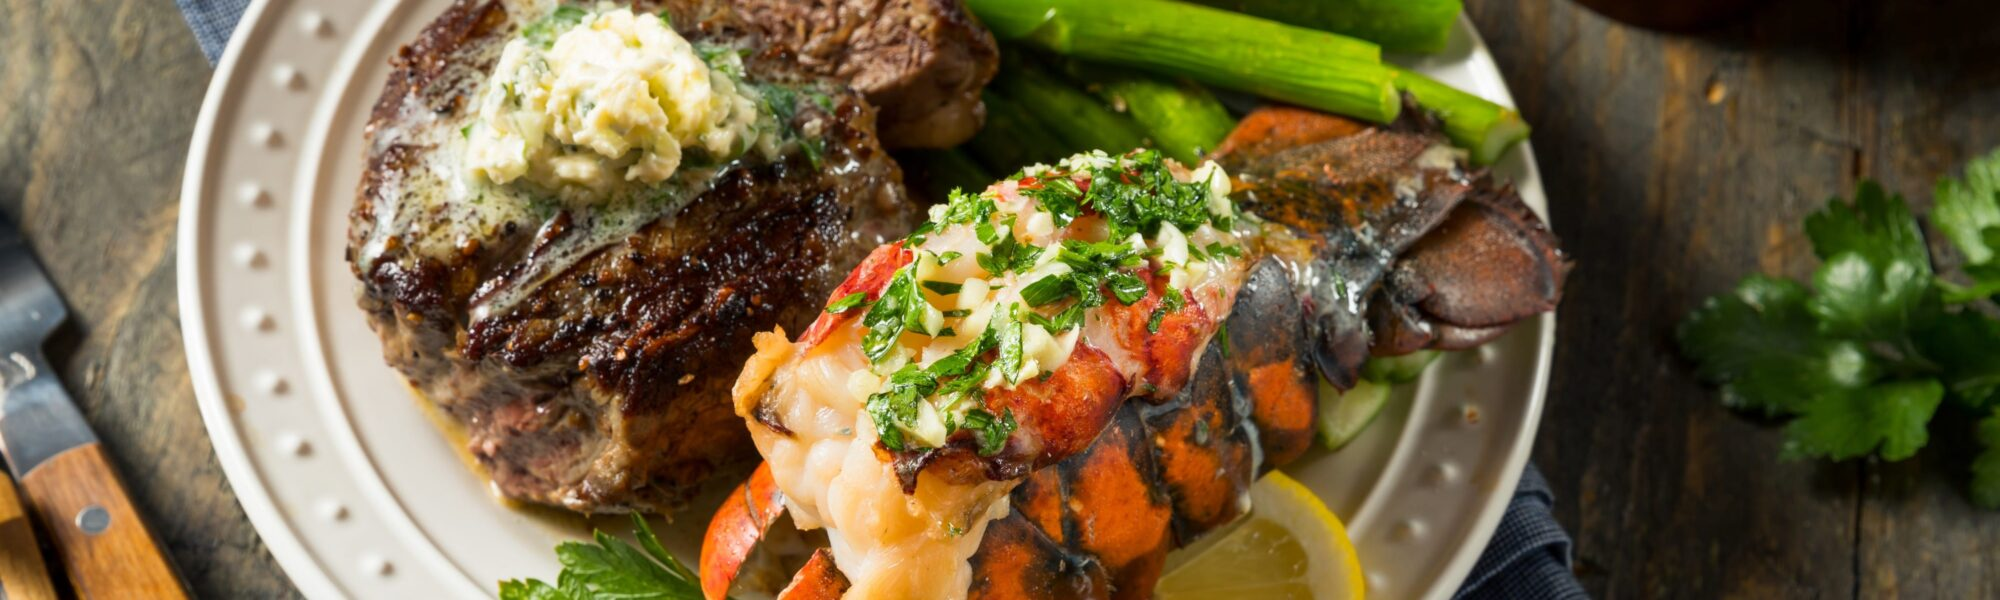 Un surf and turf - © bhofack2